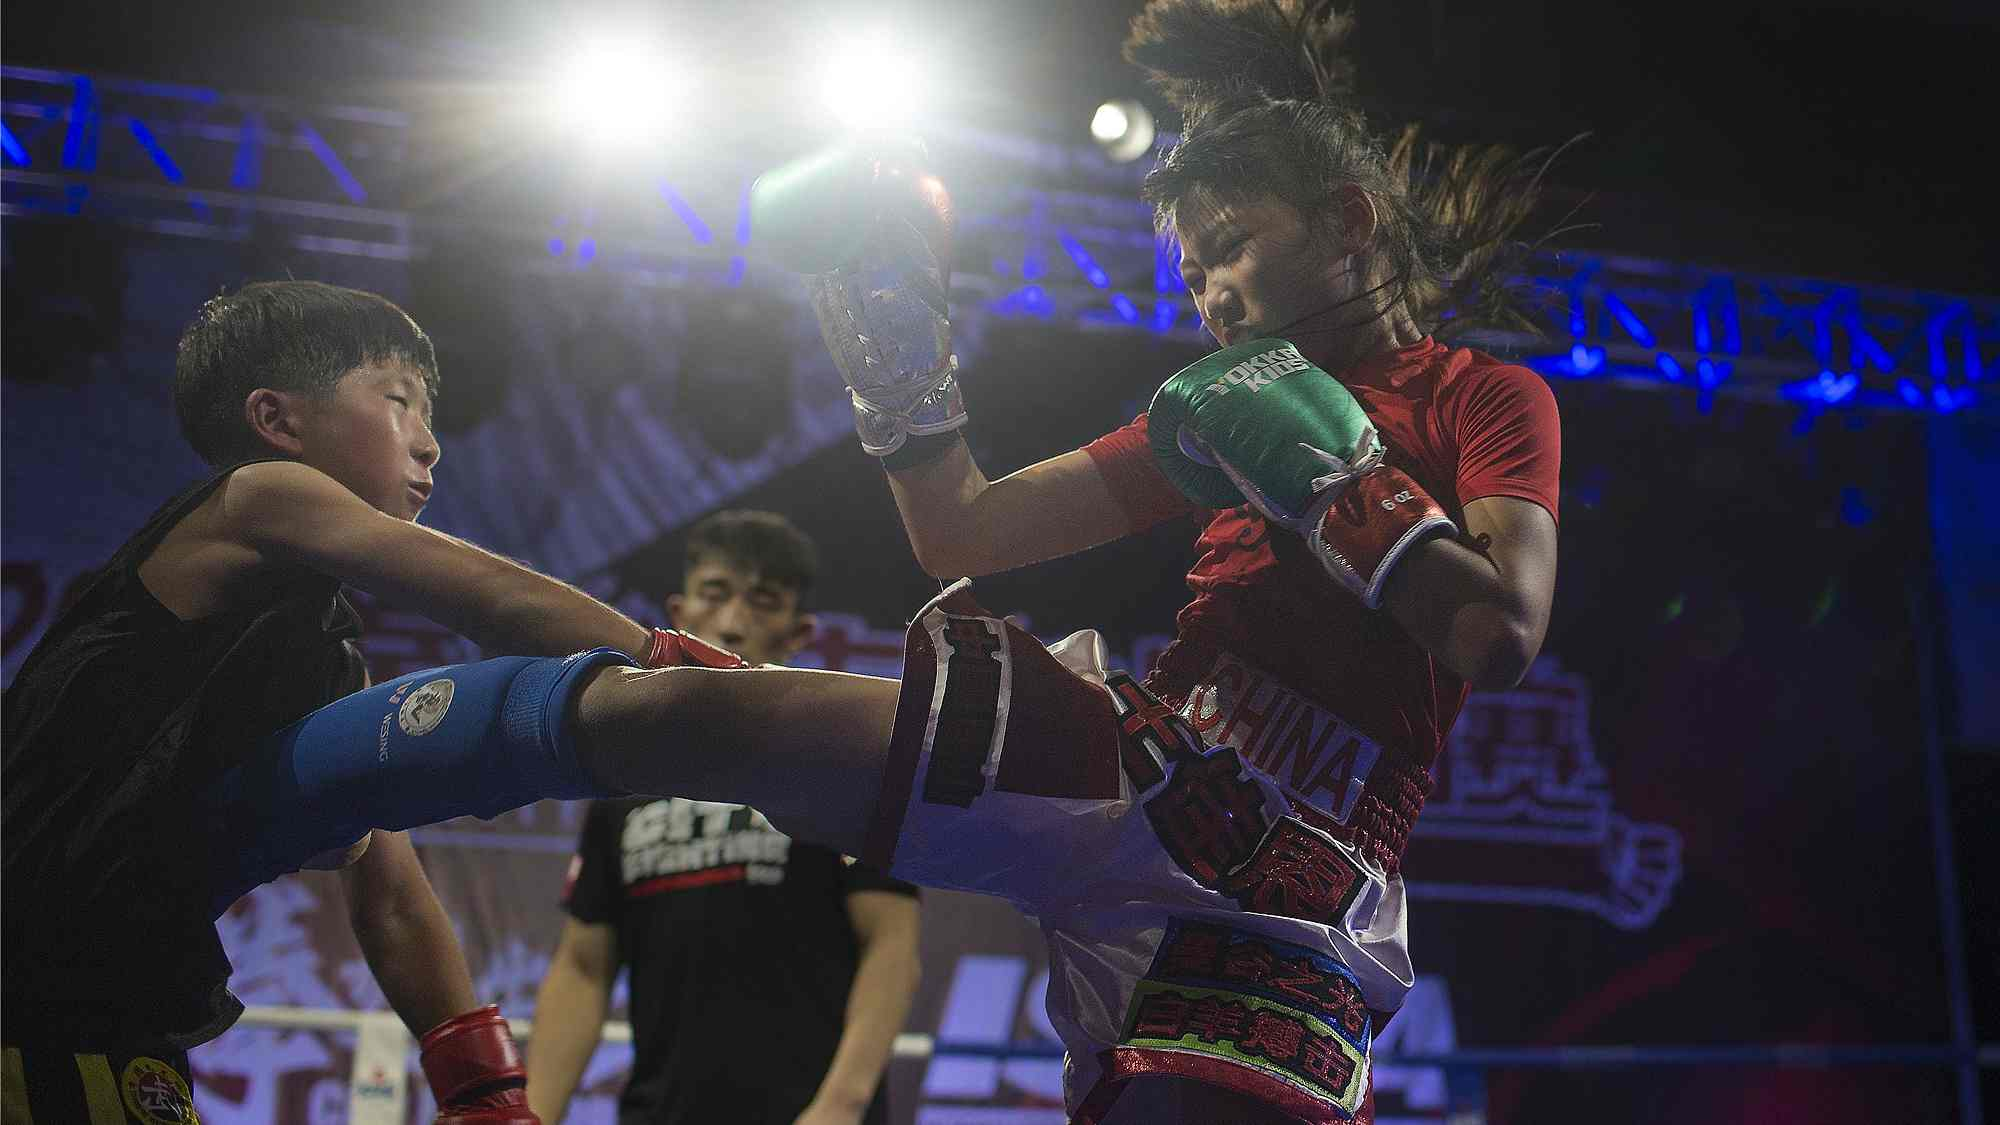 'Dangal' in real life: 10-year-old Chinese girl is eager to become world-class boxer